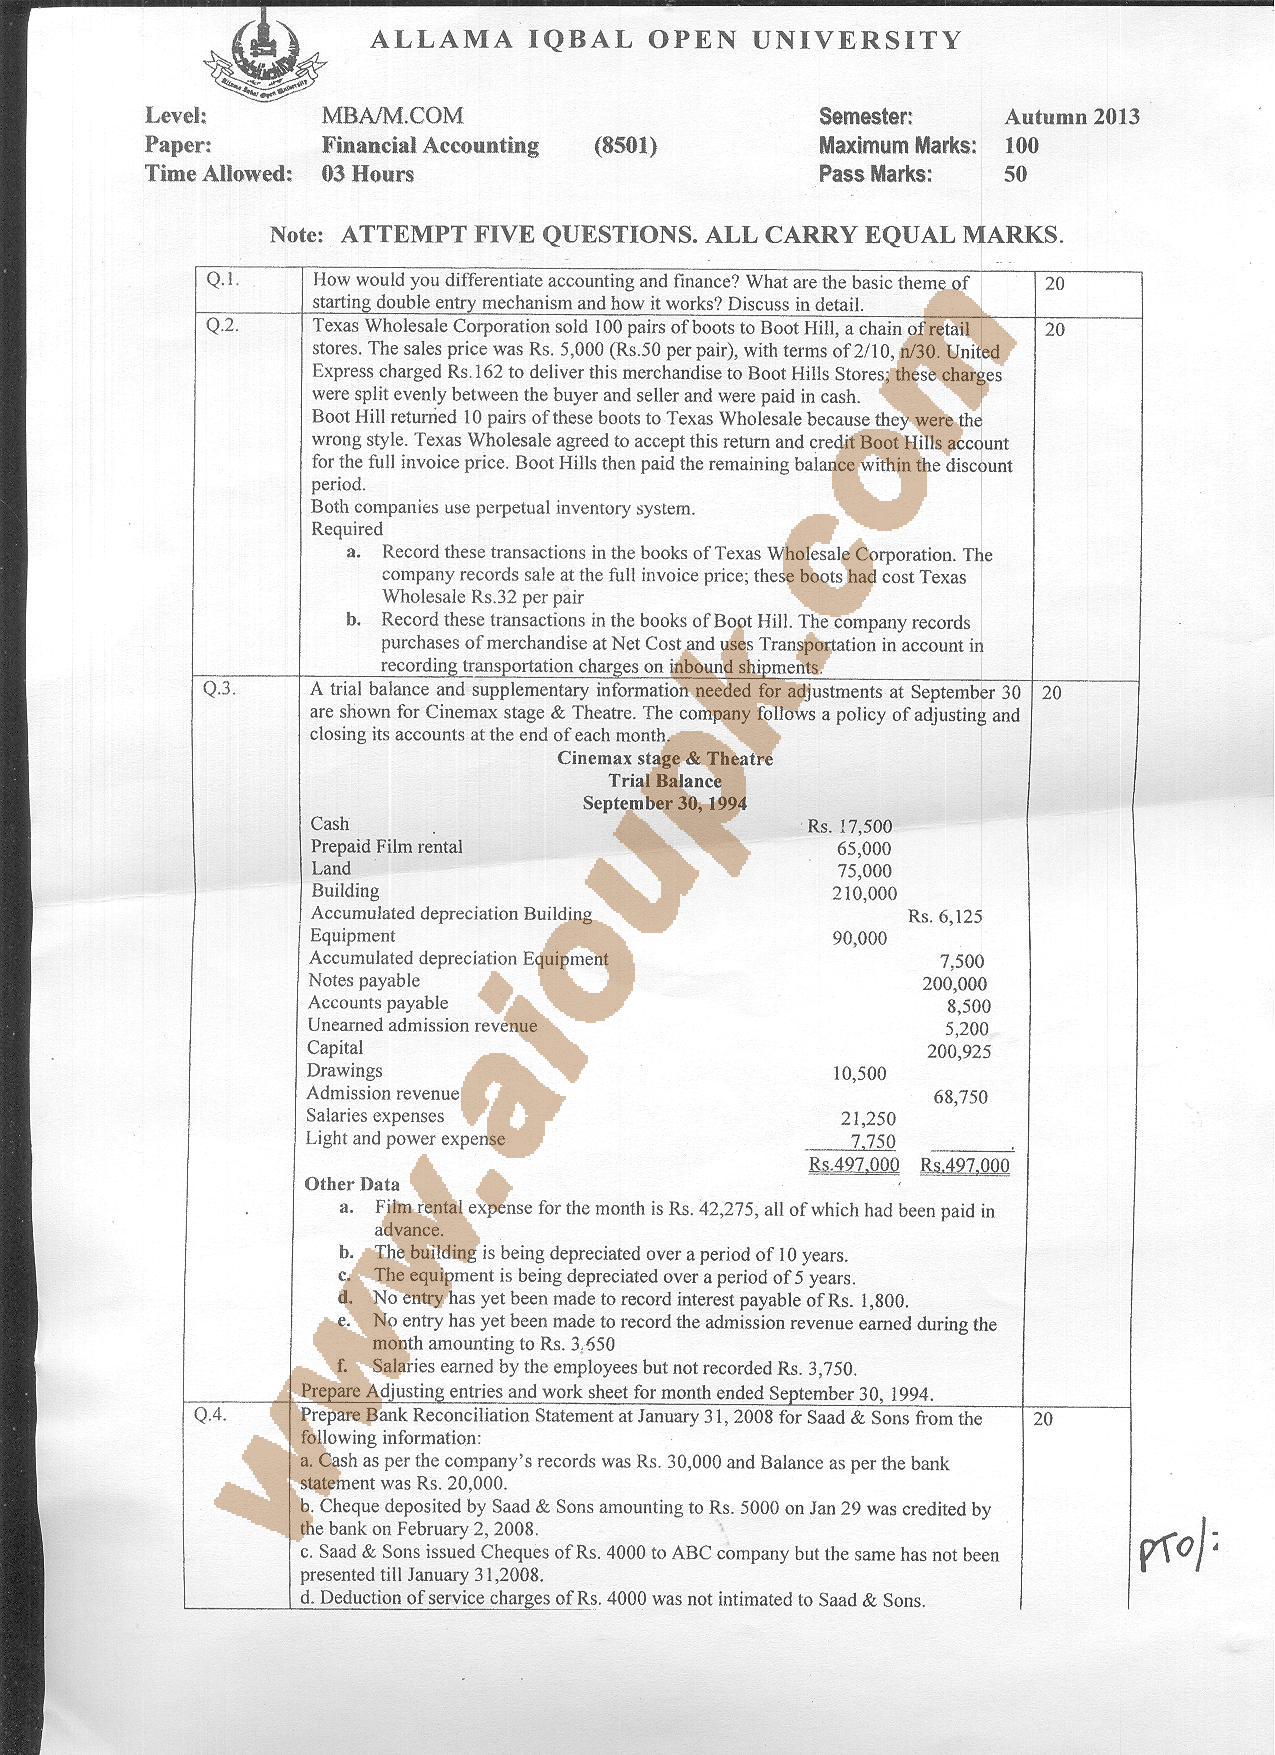 financial accounting mba code 8501 aiou old papers of autumn side a 2013 old paper mba aiou financial accounting